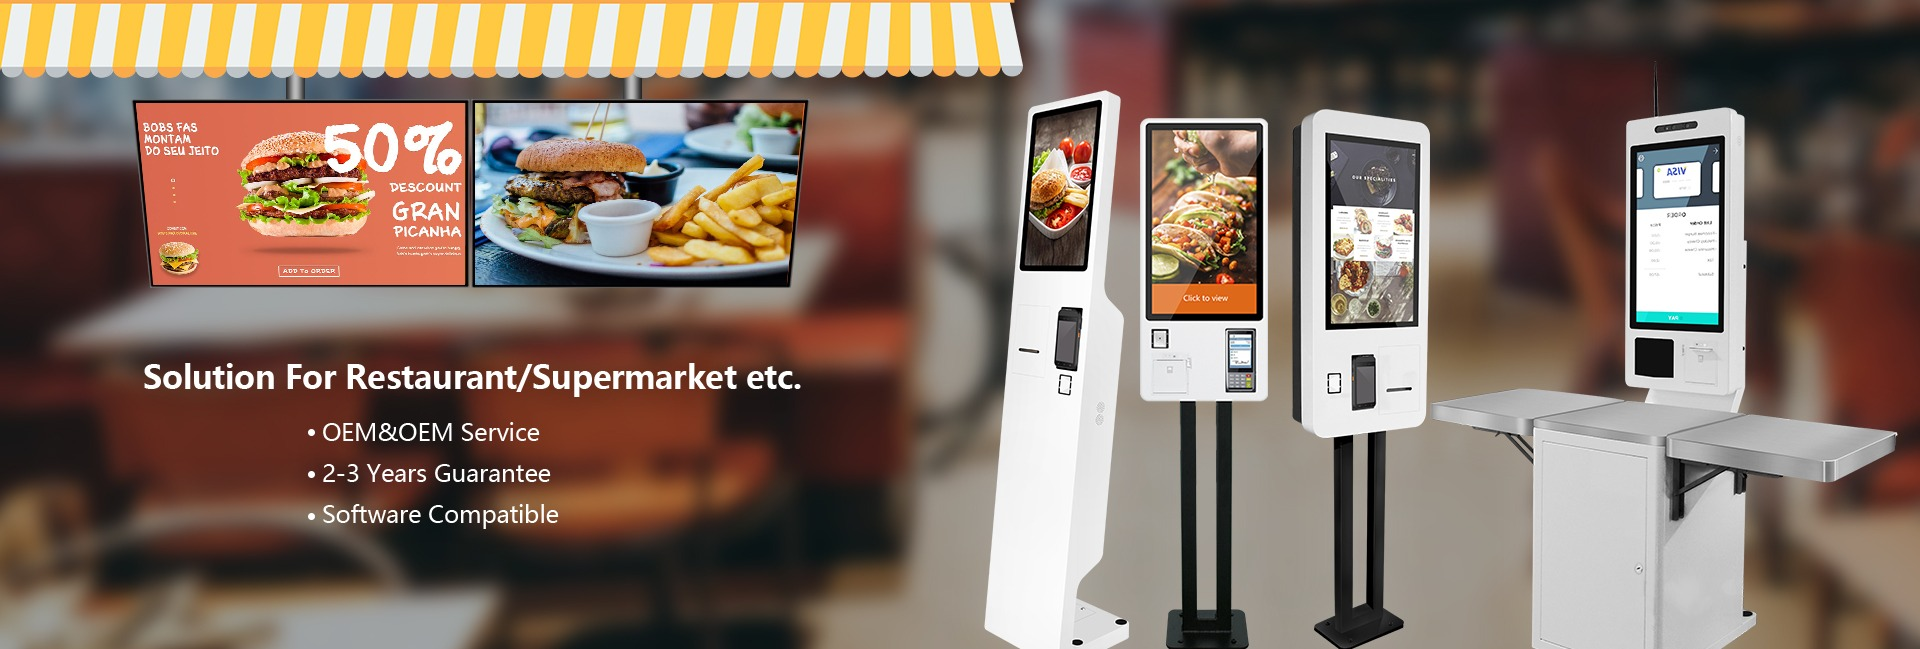 online ordering for restaurants Digital Screens and self order kiosk